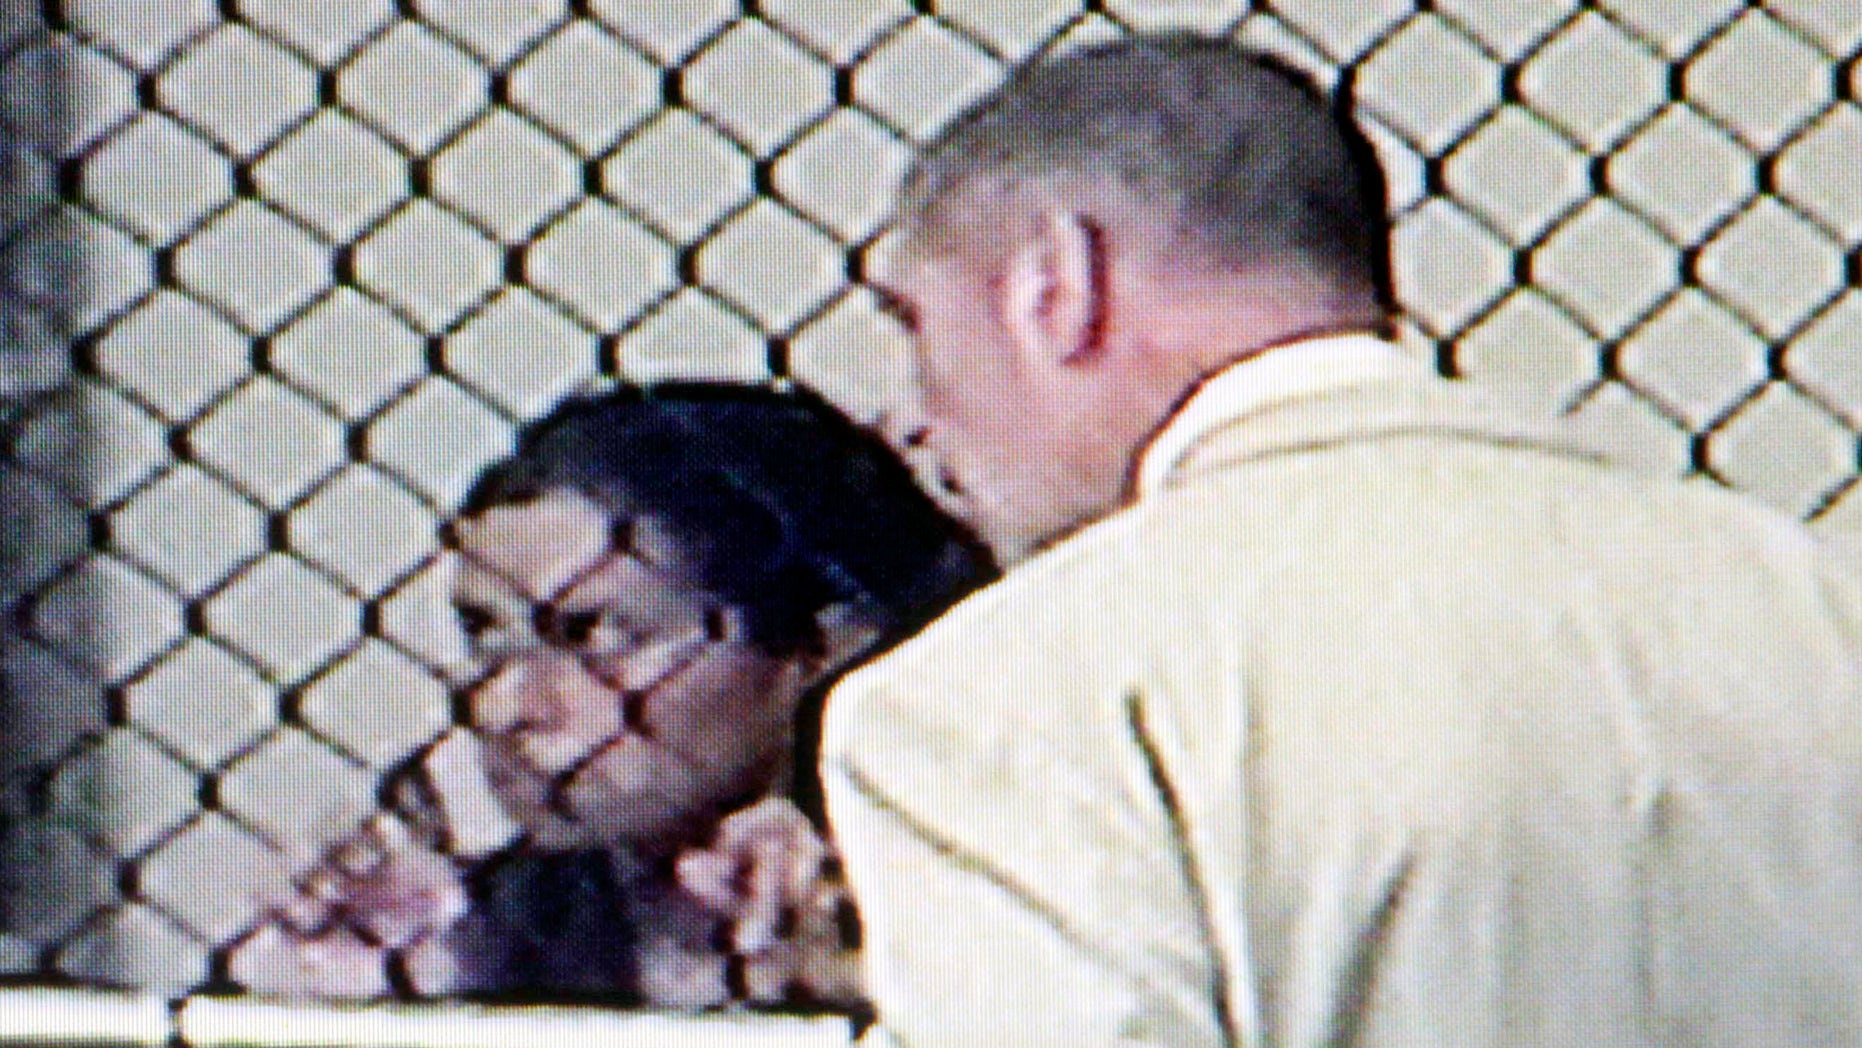 August 24: Sonia Hermosillo, 31, confers with her defense attorney at a video arraignment at the Santa Ana, California jail. Prosecutors say Hermosillo took off a special helmet that her son wore for a medical condition and tossed him over the edge of the parking structure at Children's Hospital of Orange County before validating her parking and driving away earlier this week. The boy died on Wednesday.